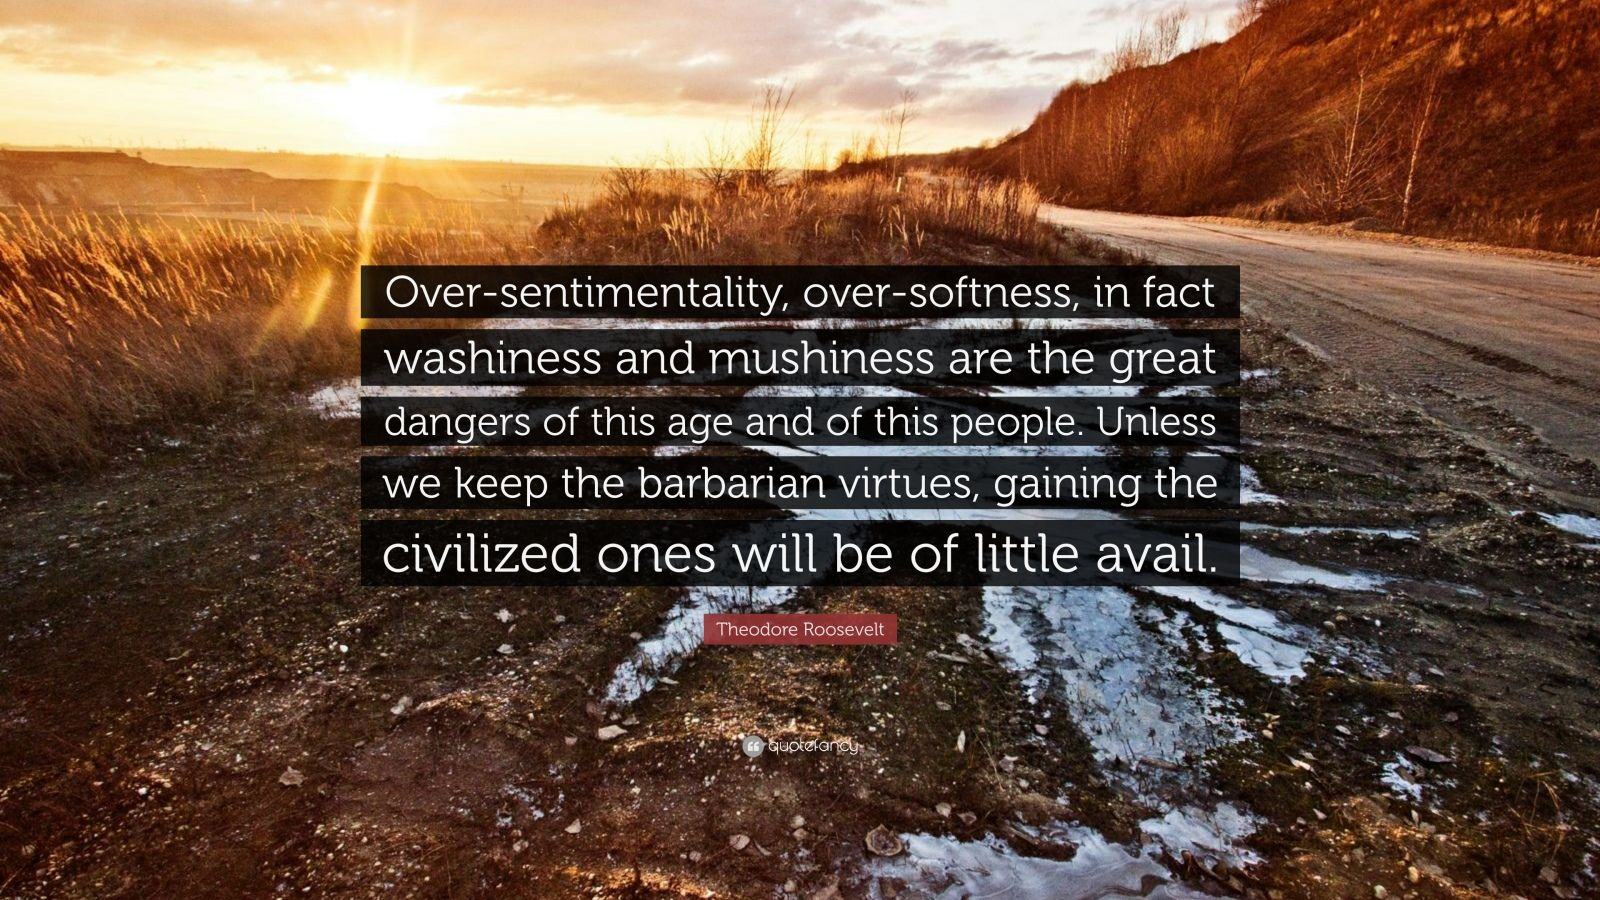 """Theodore Roosevelt Quote: """"Over-sentimentality, over-softness, in fact washiness and mushiness are the great dangers of this age and of this people. Unless we keep the barbarian virtues, gaining the civilized ones will be of little avail."""""""